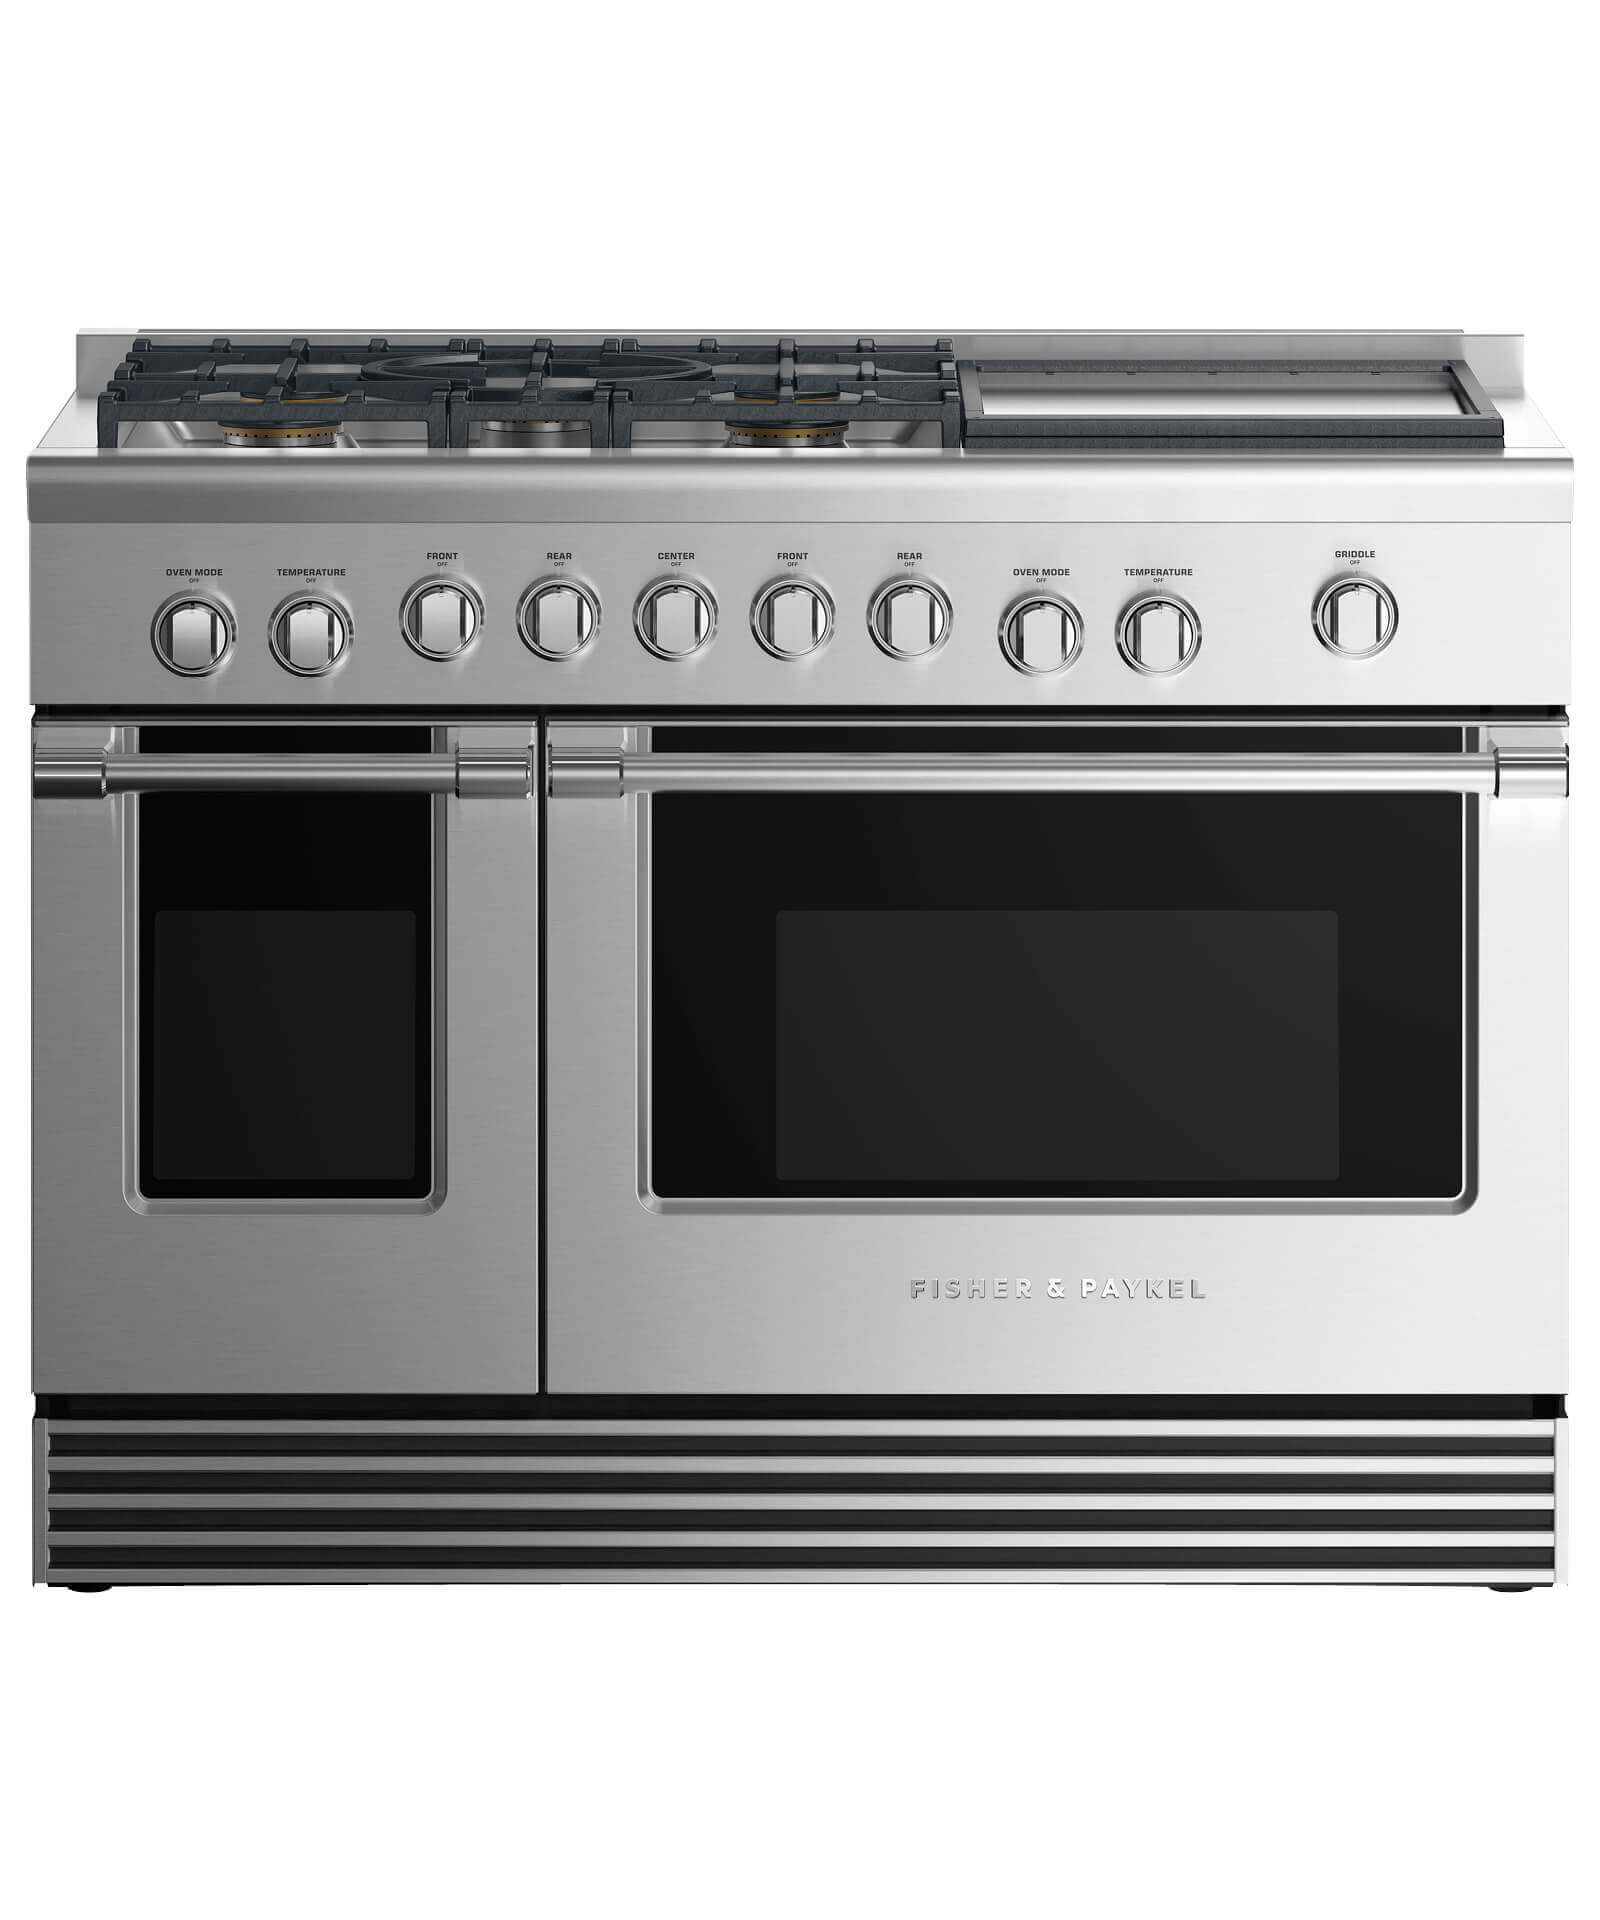 Rgv2 485gd N 48 Gas Range 5 Burners With Griddle